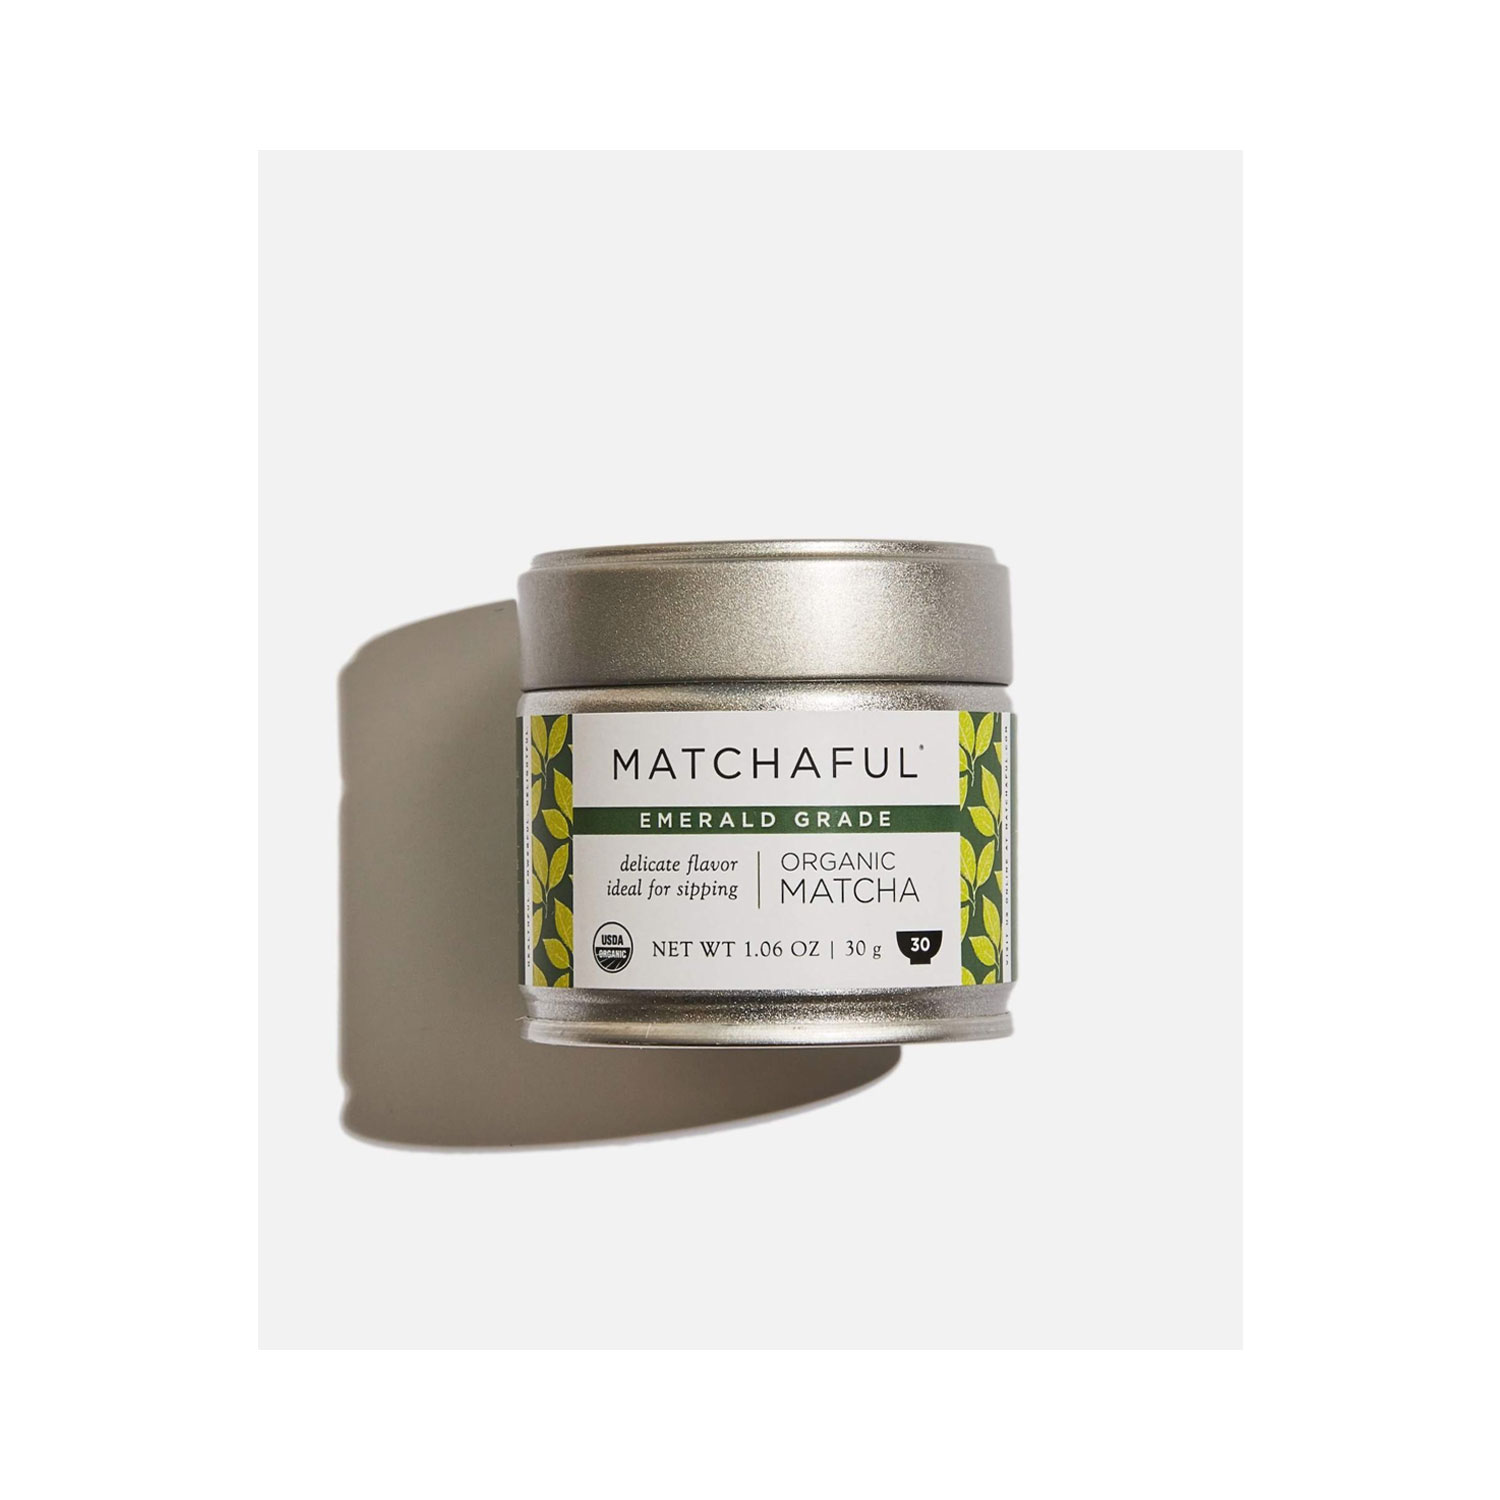 ORGANIC EMERALD GRADE CEREMONIAL MATCHA BY MATCHAFUL